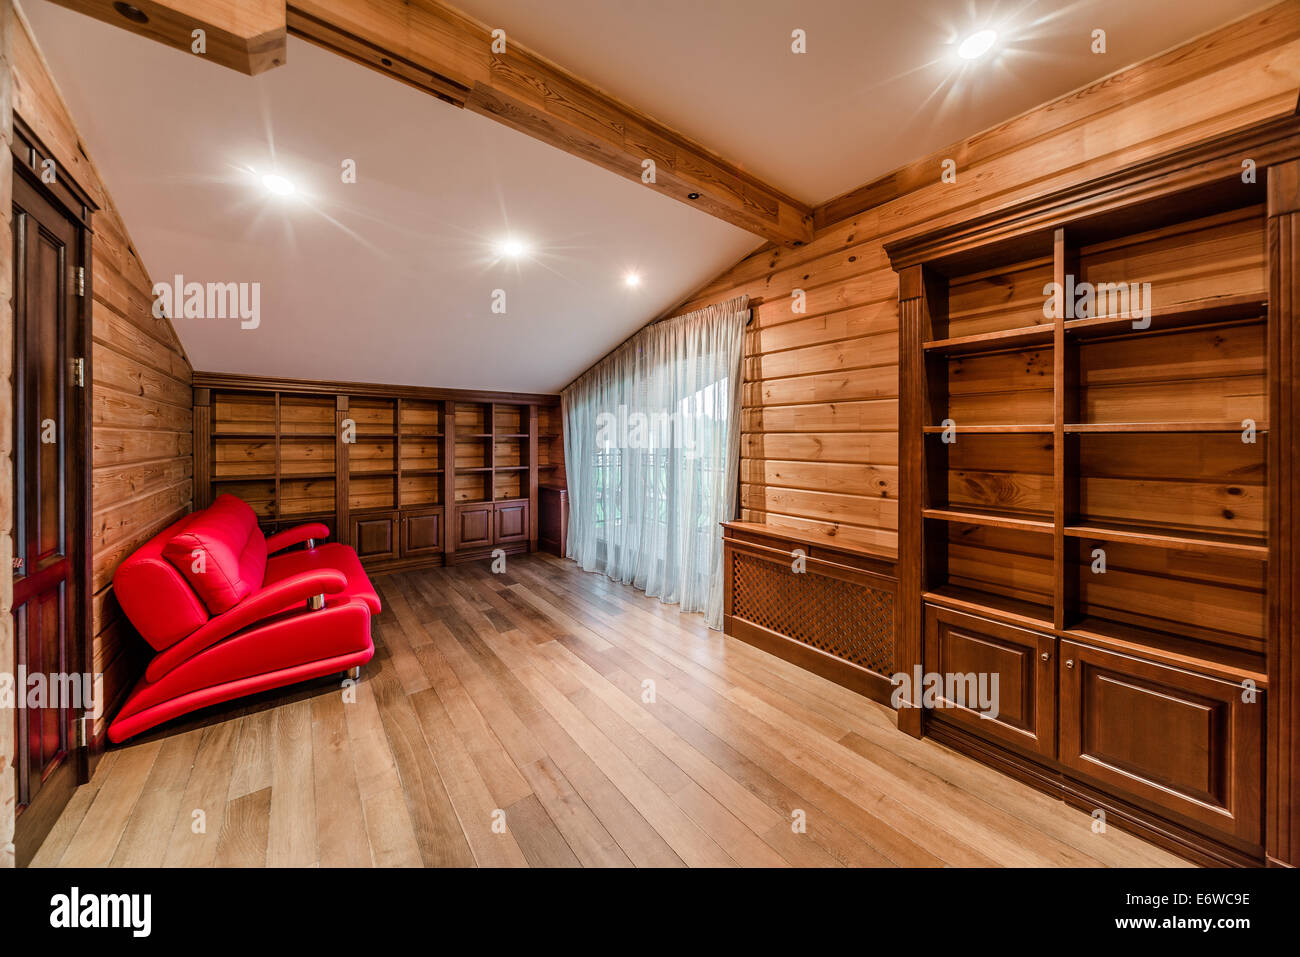 Interior of log cabin library - Stock Image